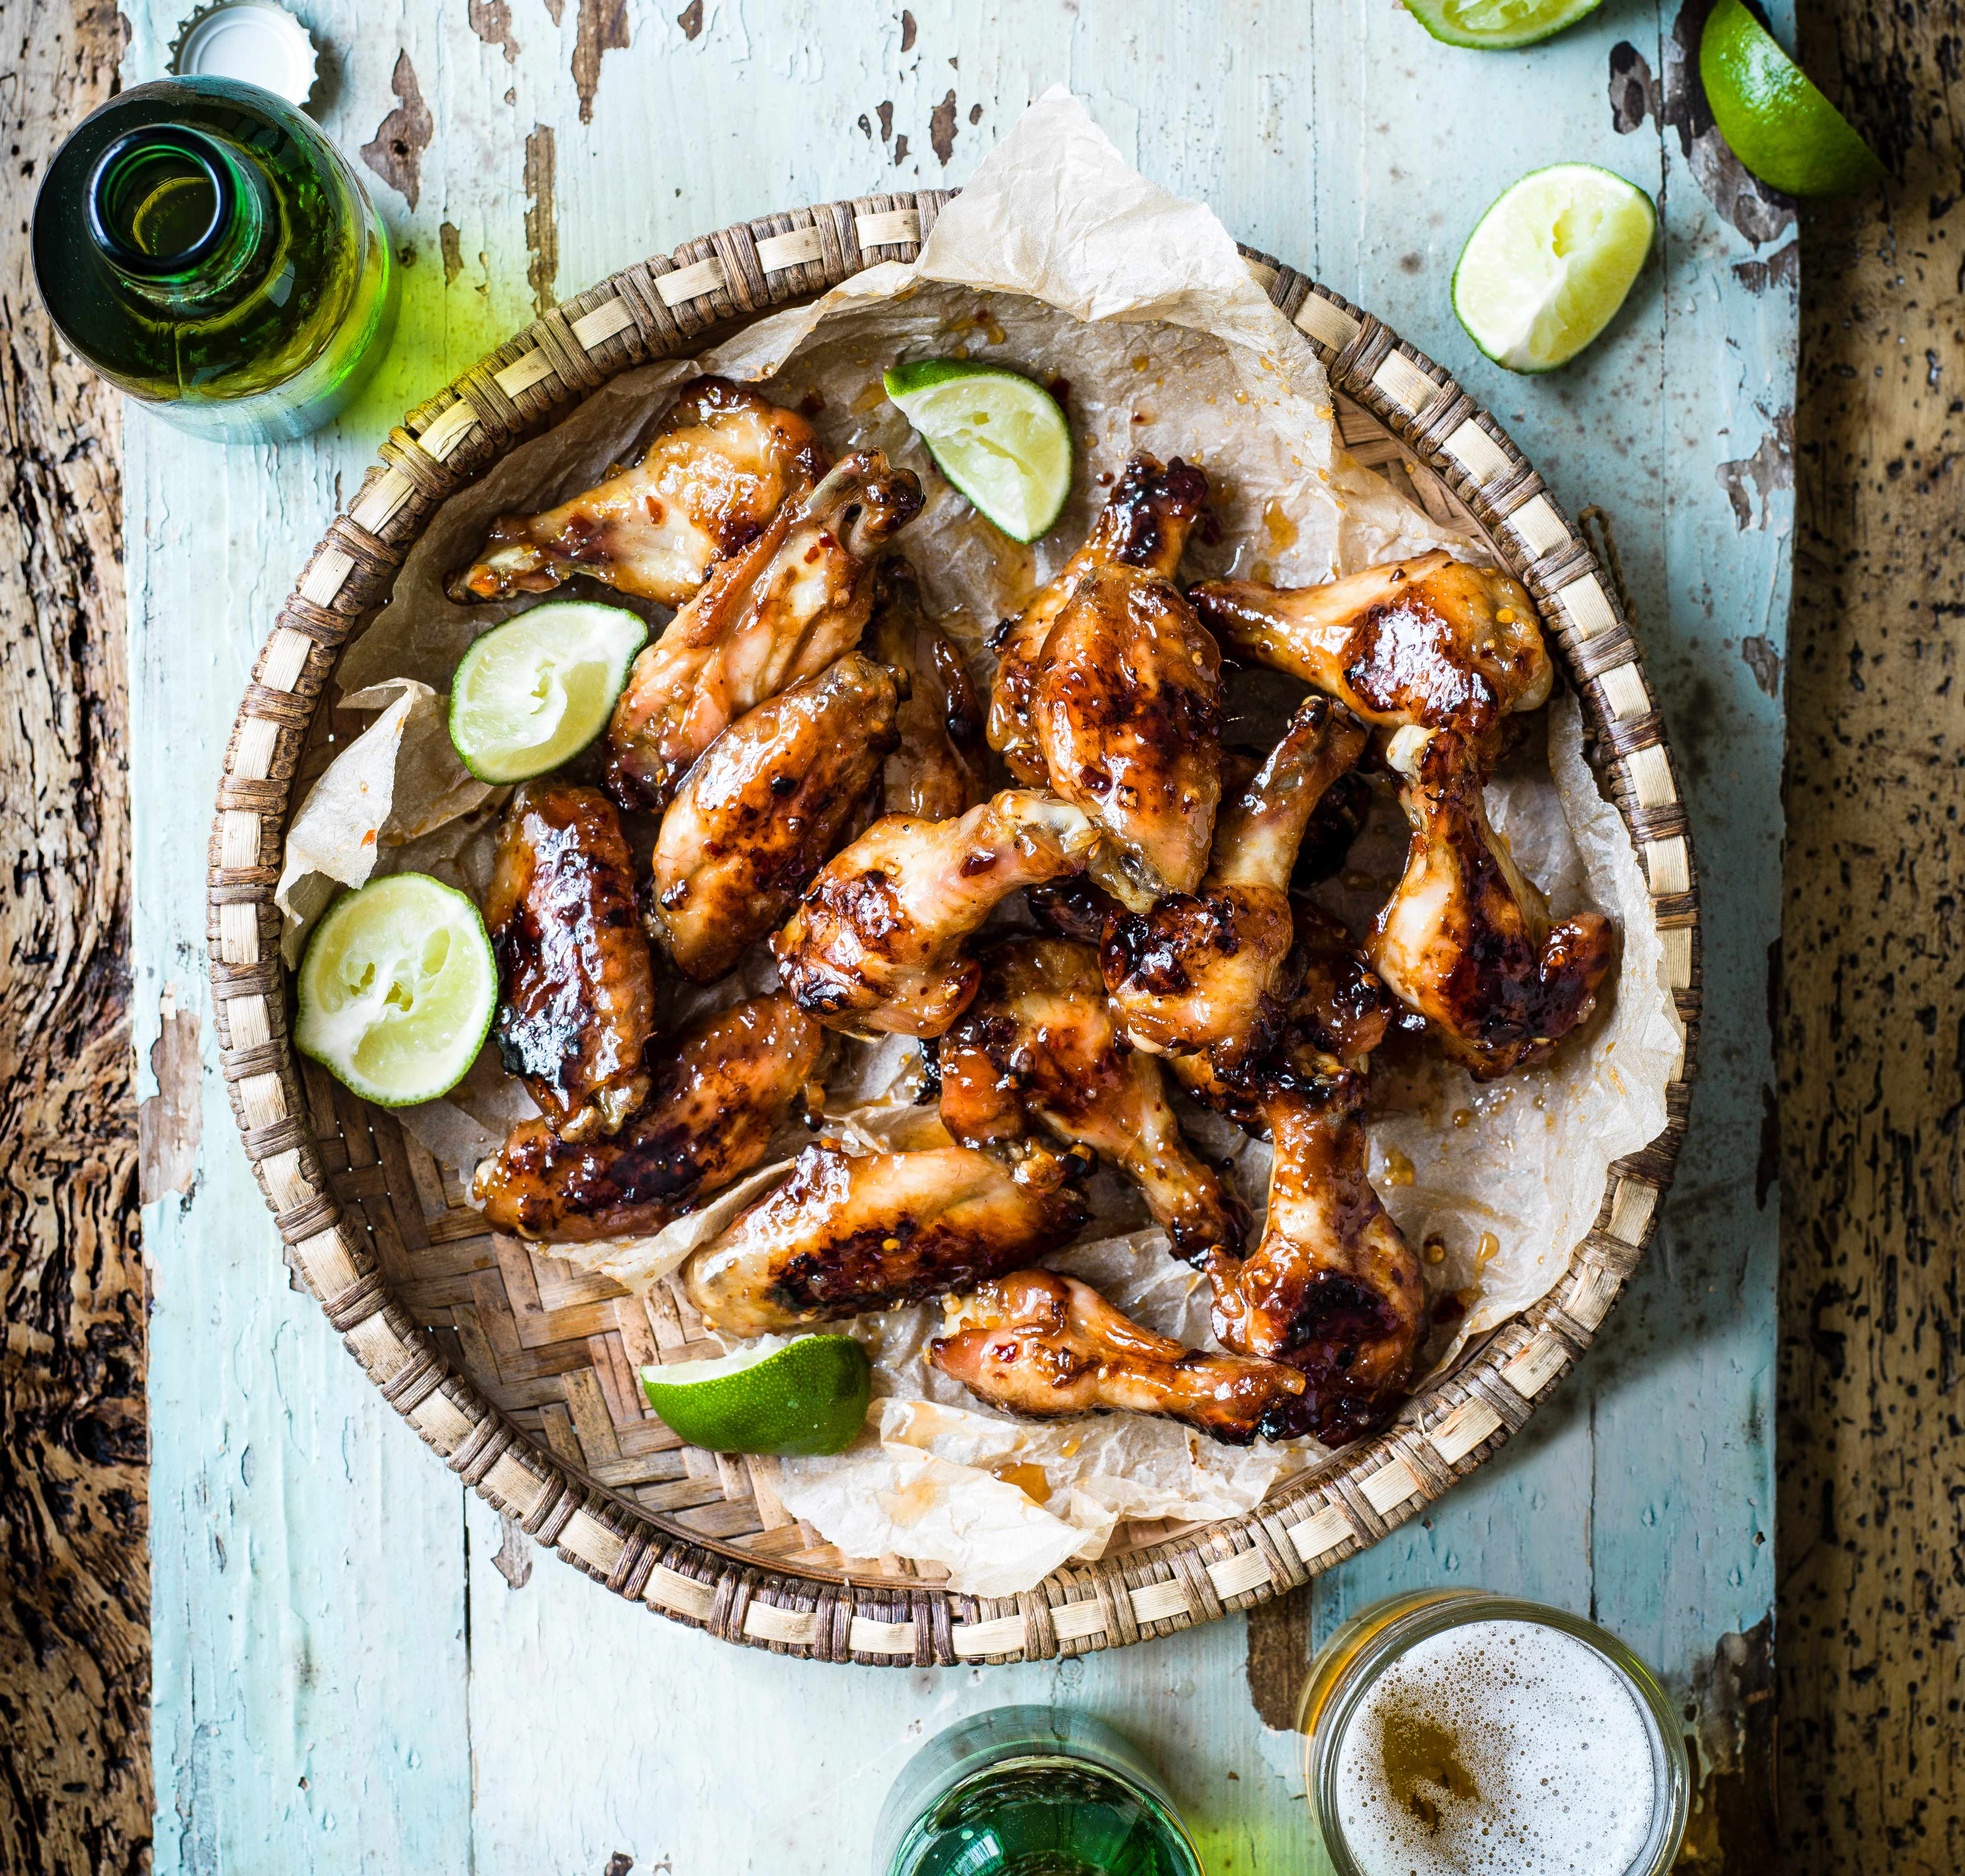 BBQ Fish sauce wings - sticky bowl of mini wings with lime wedges